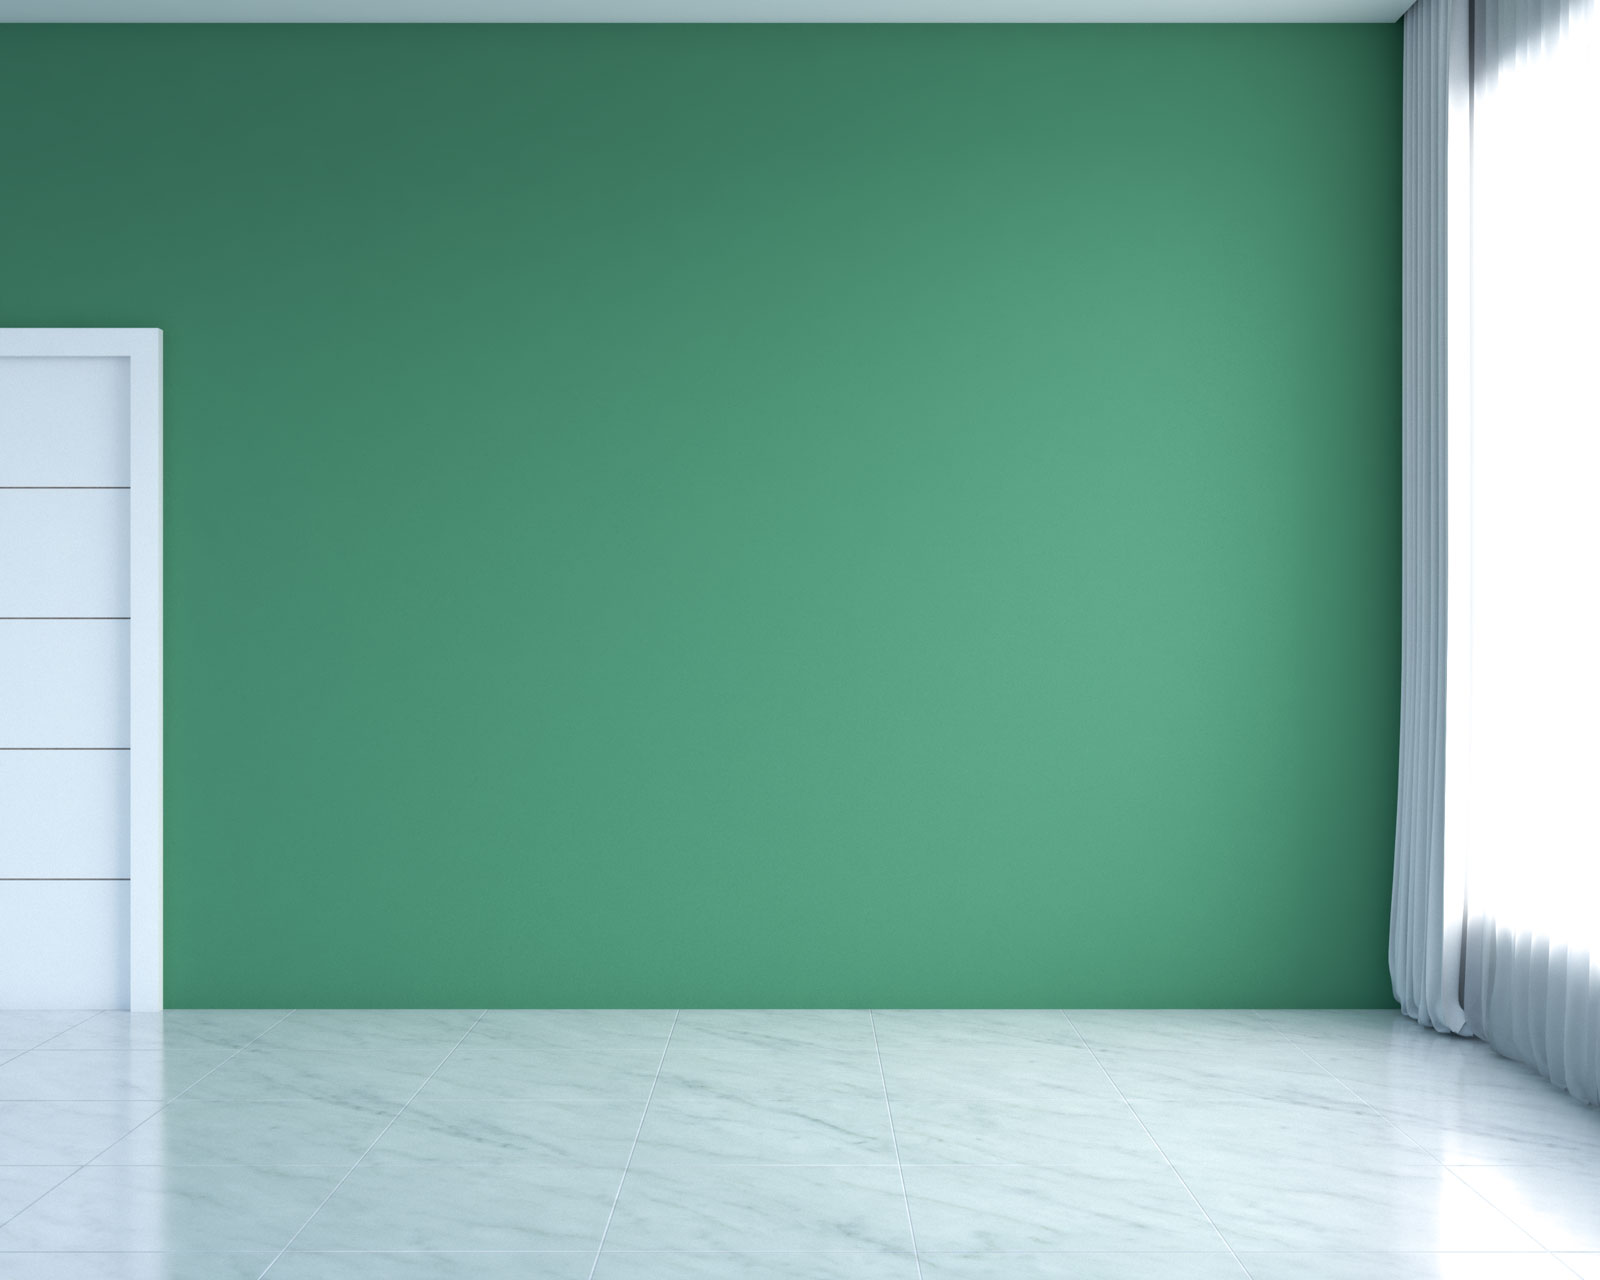 White flooring with green walls